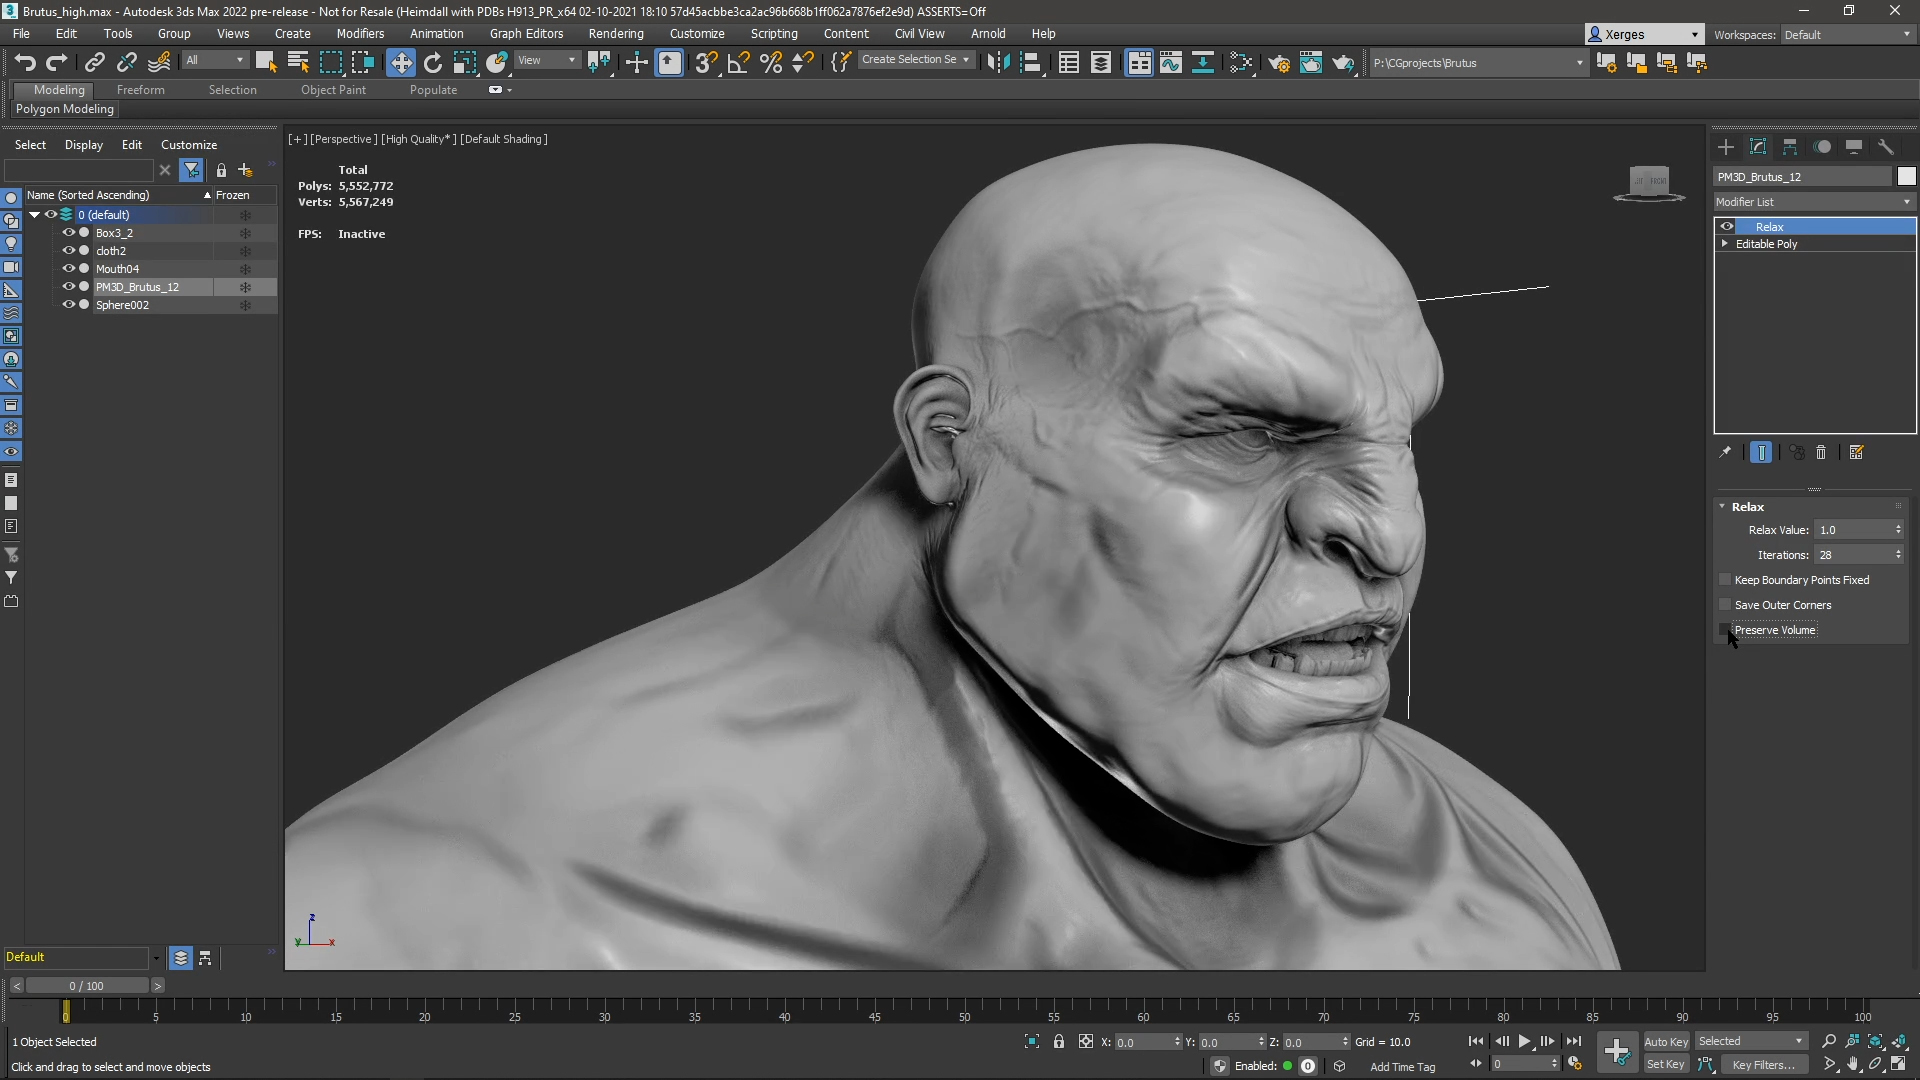 Autodesk 3ds Max 22 - Modeling Relax Modifier